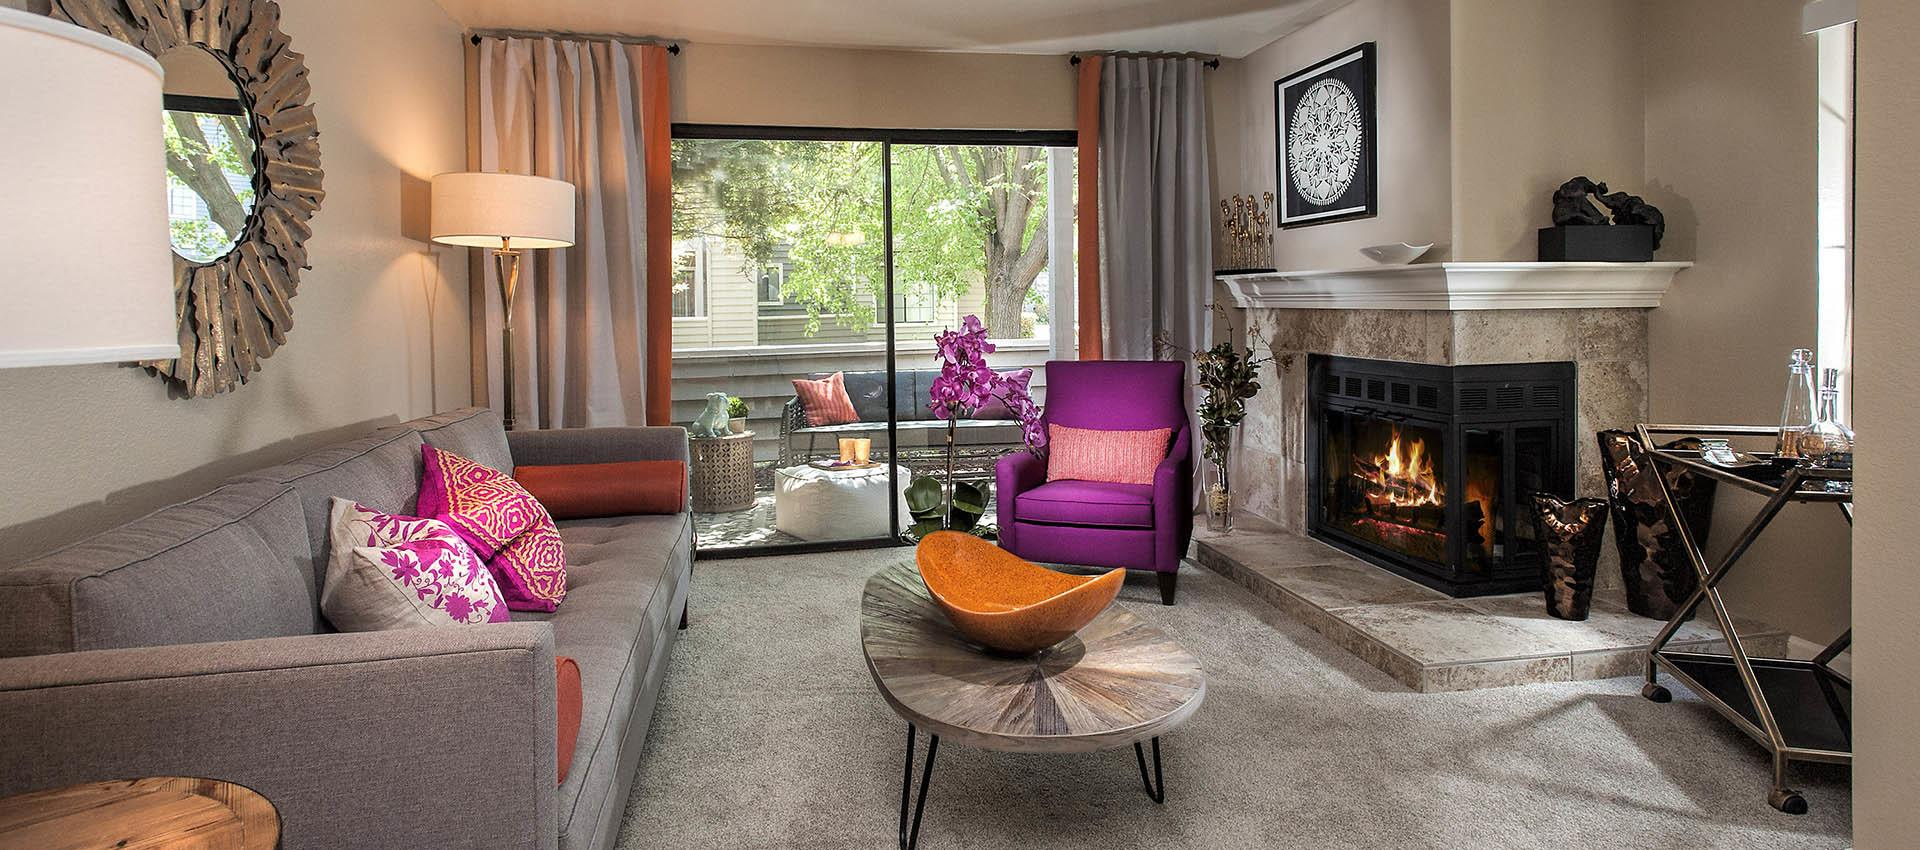 Living Room With Modern Decor And Fire Place at Hidden Lake Condominium Rentals in Sacramento, California